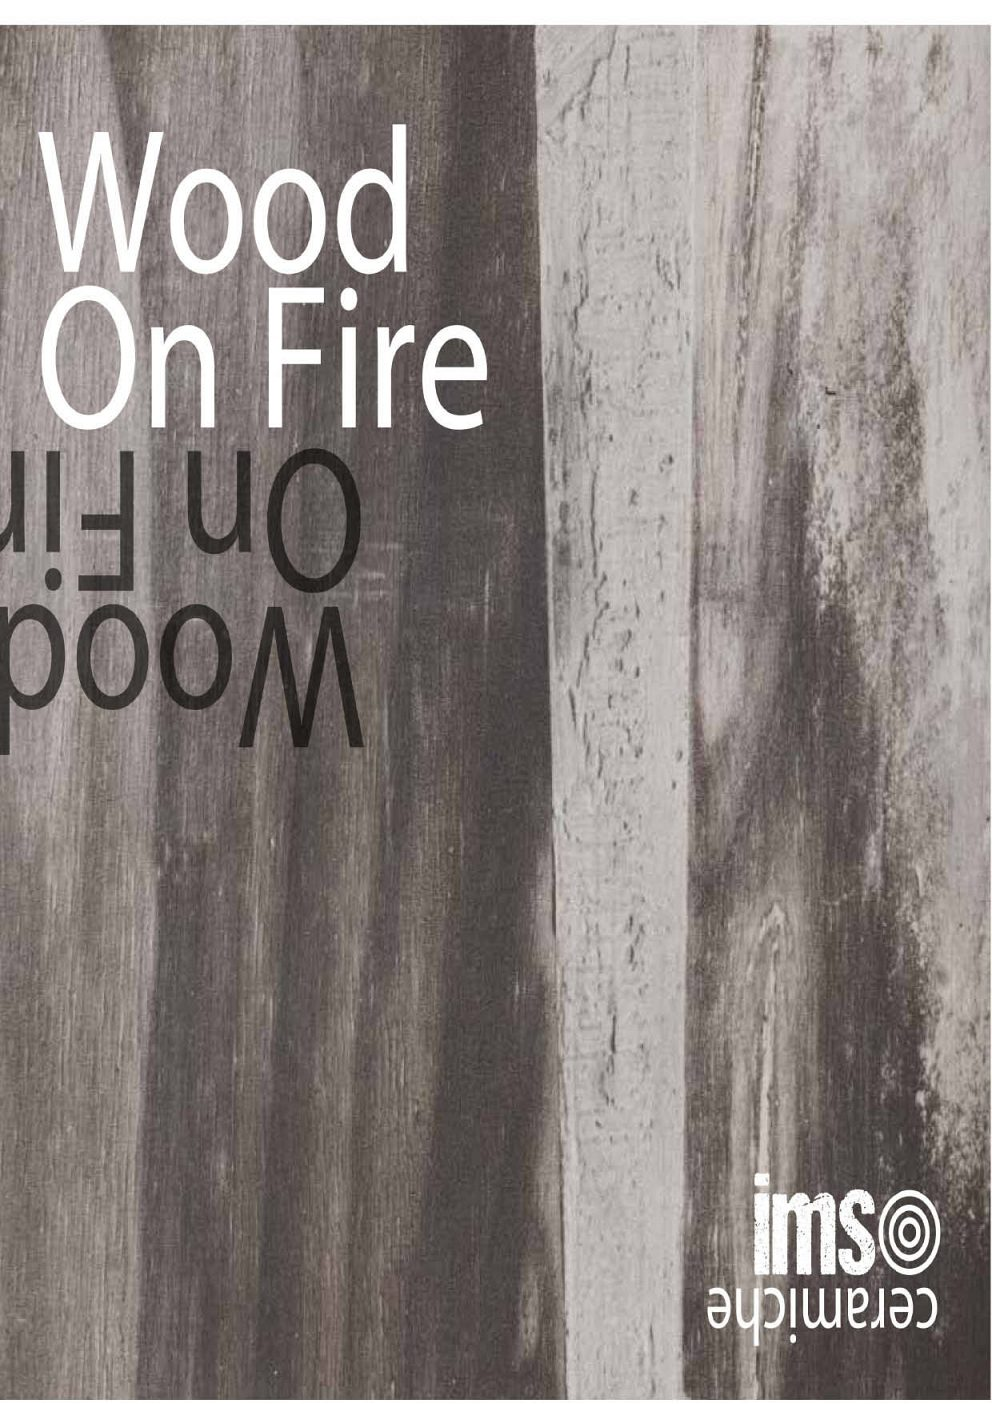 IMSO - Wood on Fire